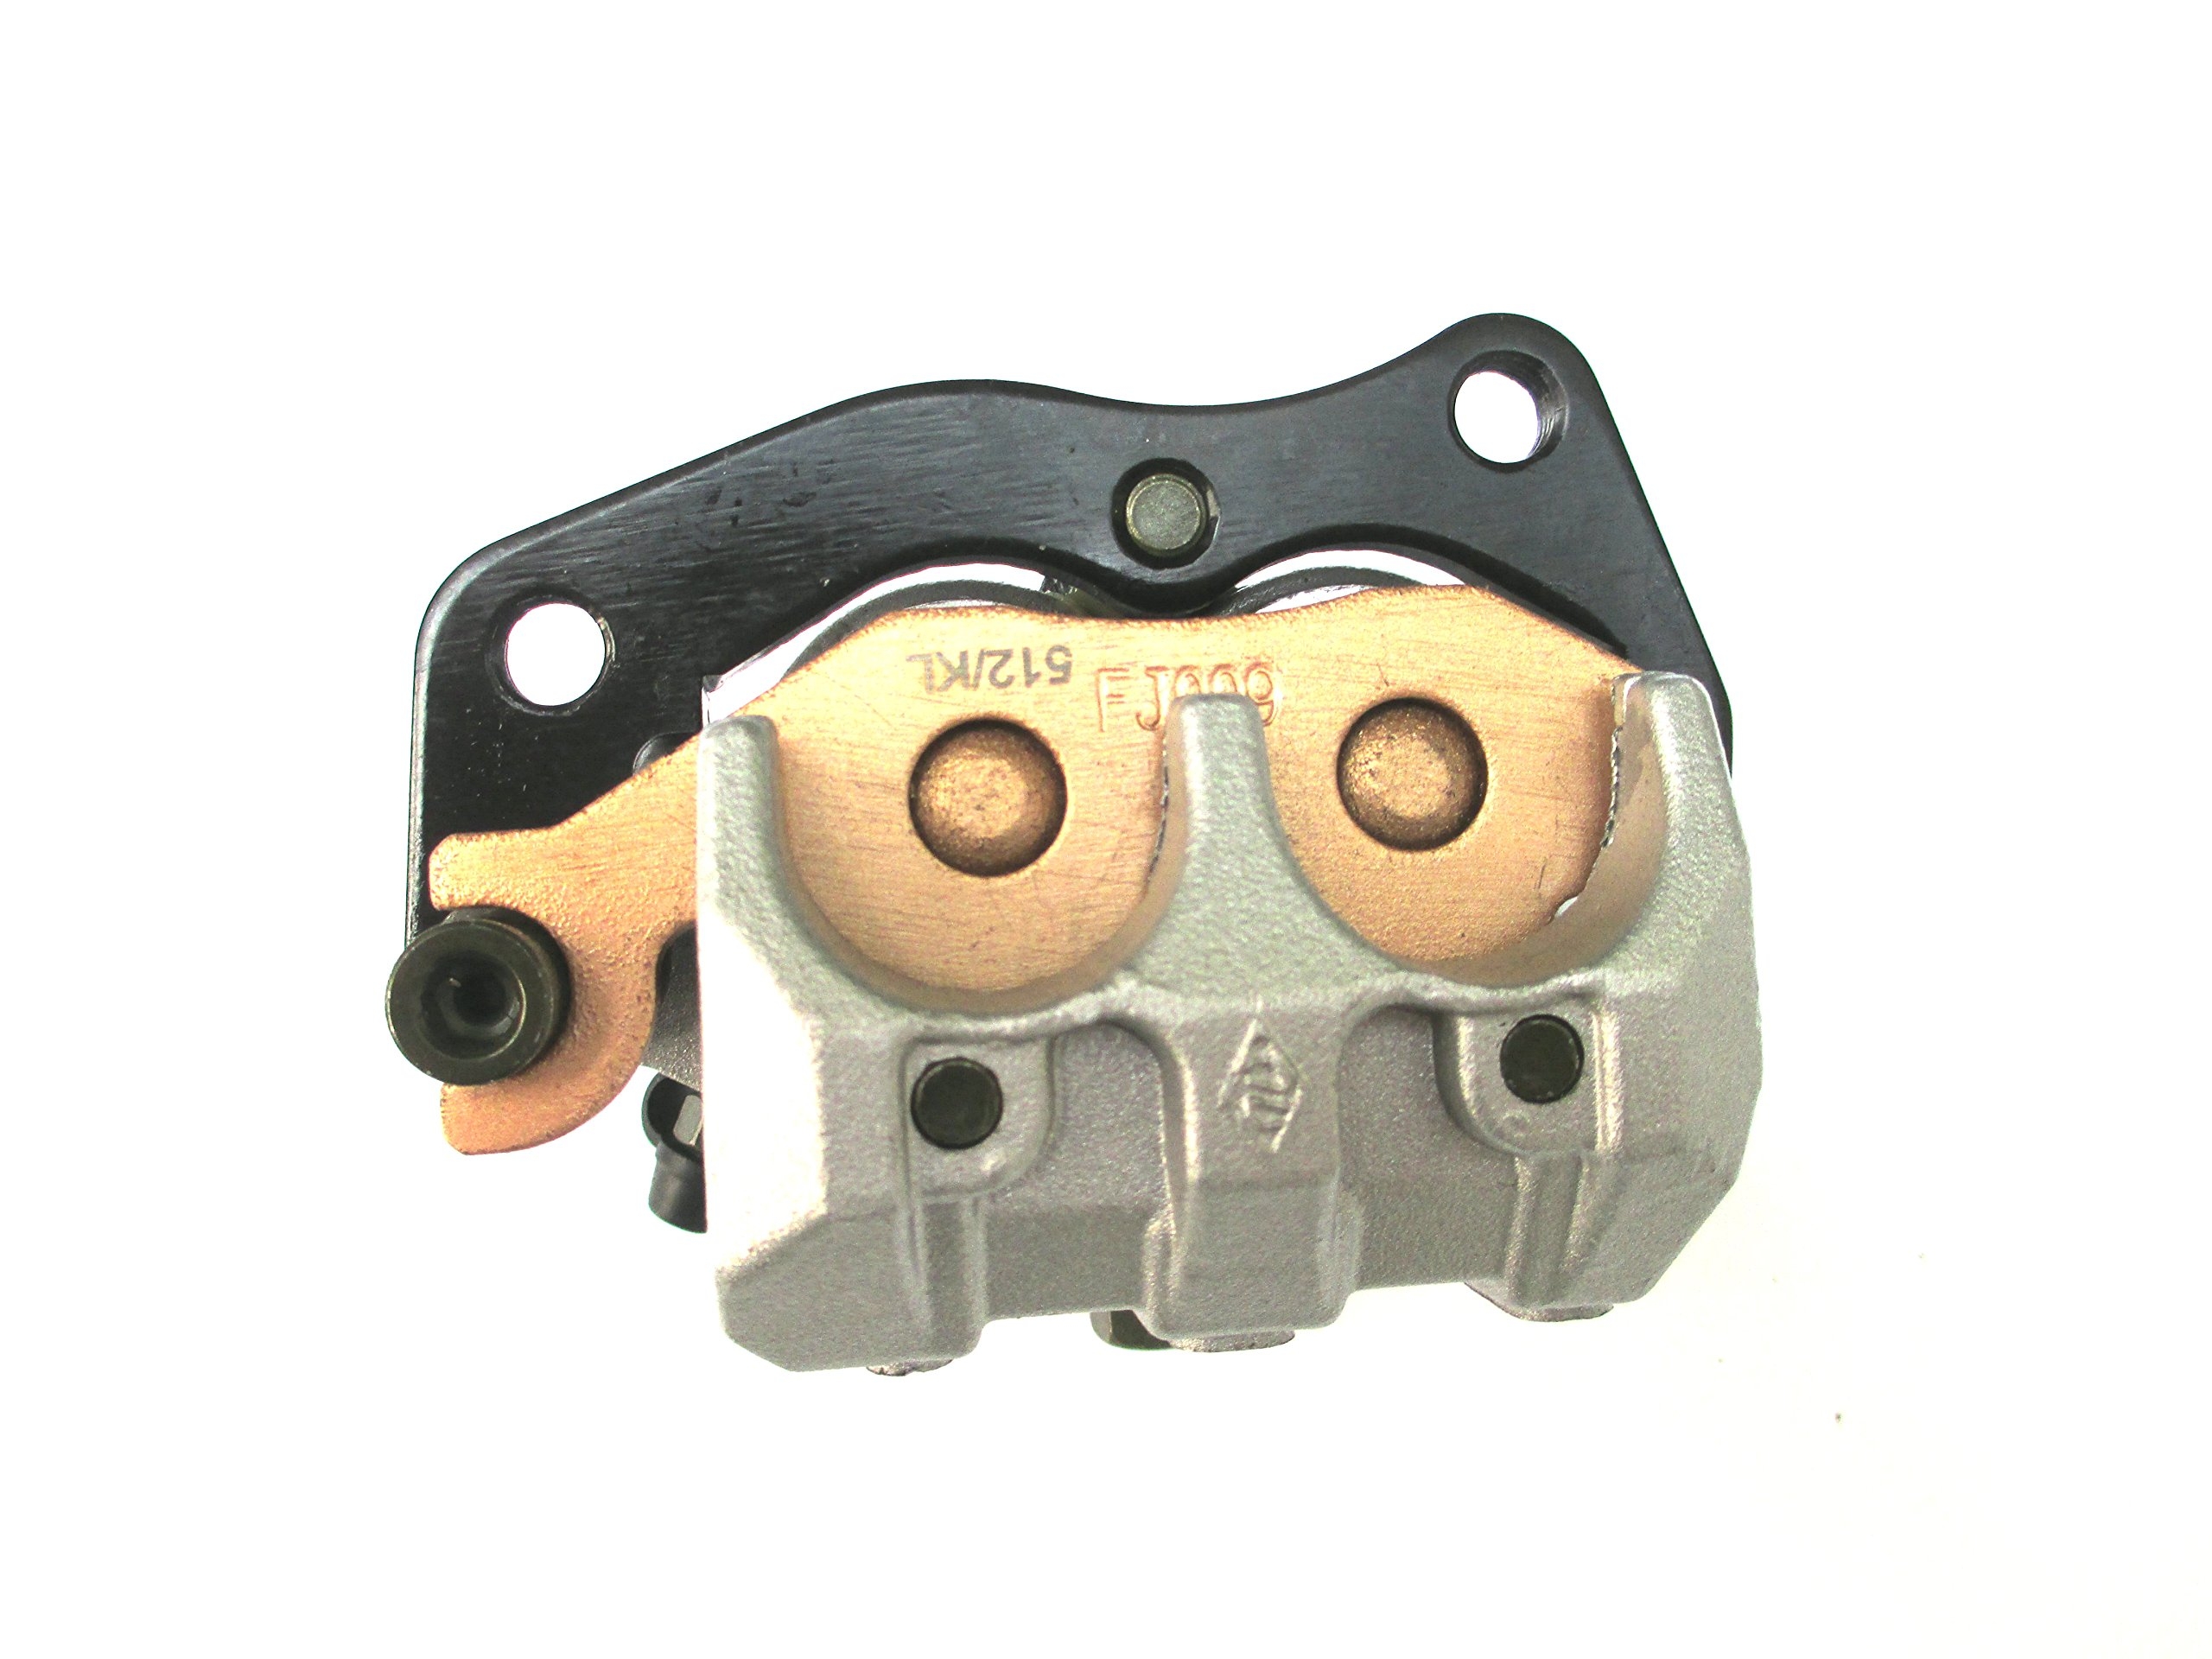 New Left & Right Front Brake Caliper FITS Yamaha Rhino Yamaha Rhino 660 YXR 450 2006 2007 2008 2009 by USonline911 (Image #3)